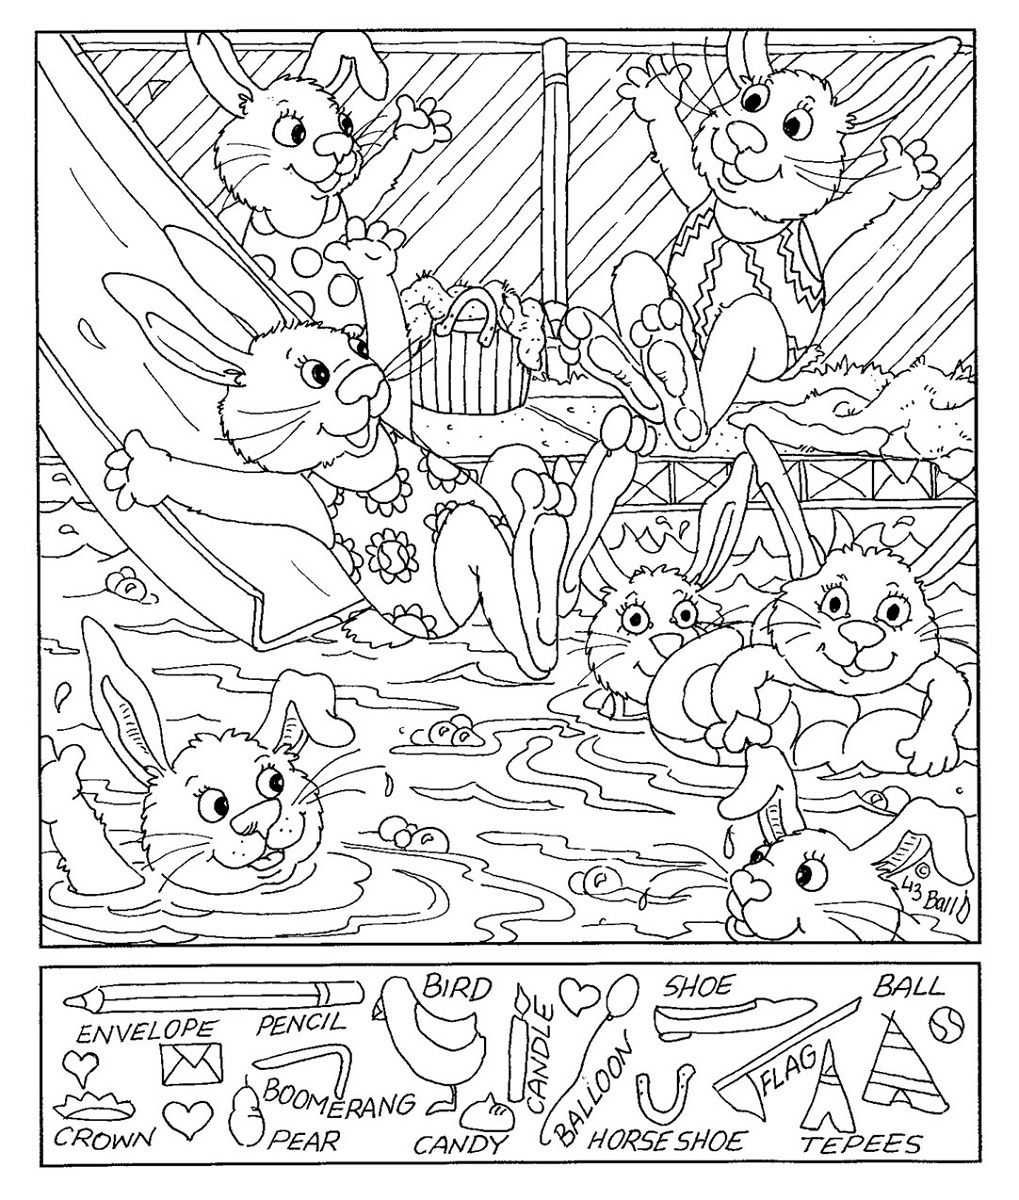 Hidden Picture Worksheet For Middle School | Kiddo Shelter - Printable Hidden Object Puzzles For Adults